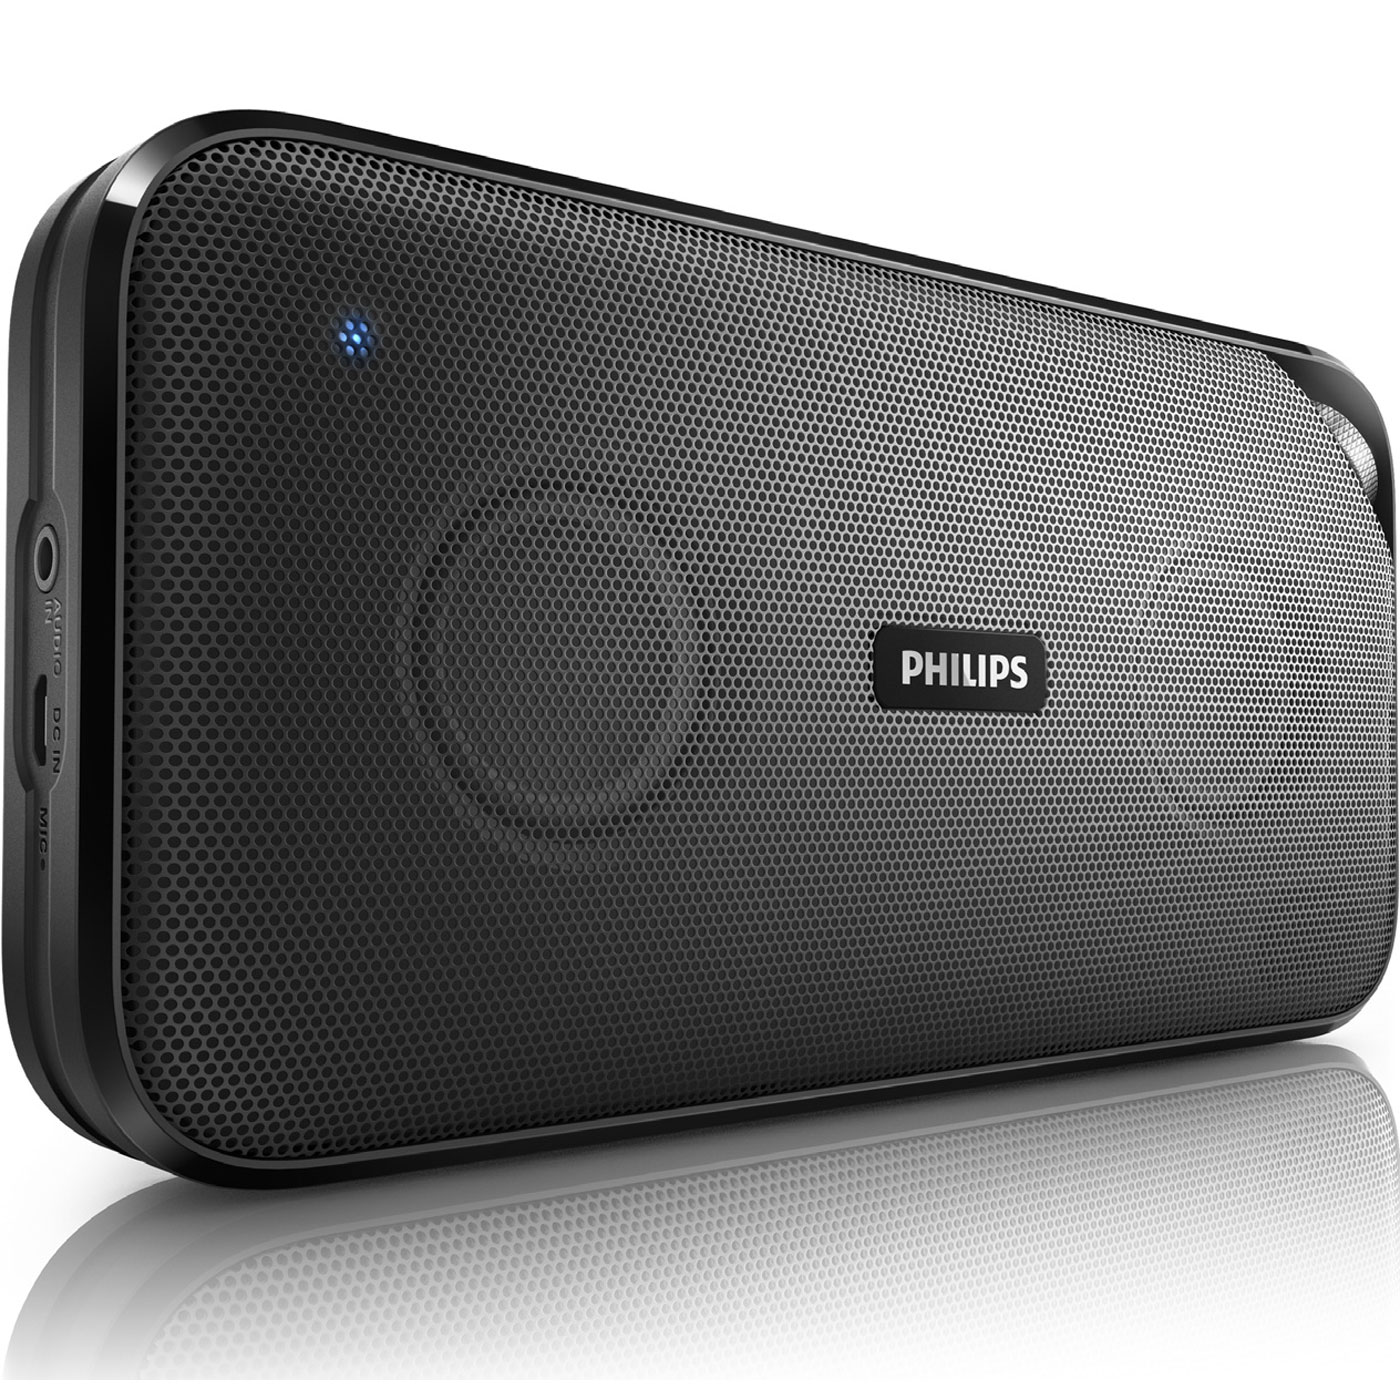 philips bt3500 noir dock enceinte bluetooth philips sur. Black Bedroom Furniture Sets. Home Design Ideas